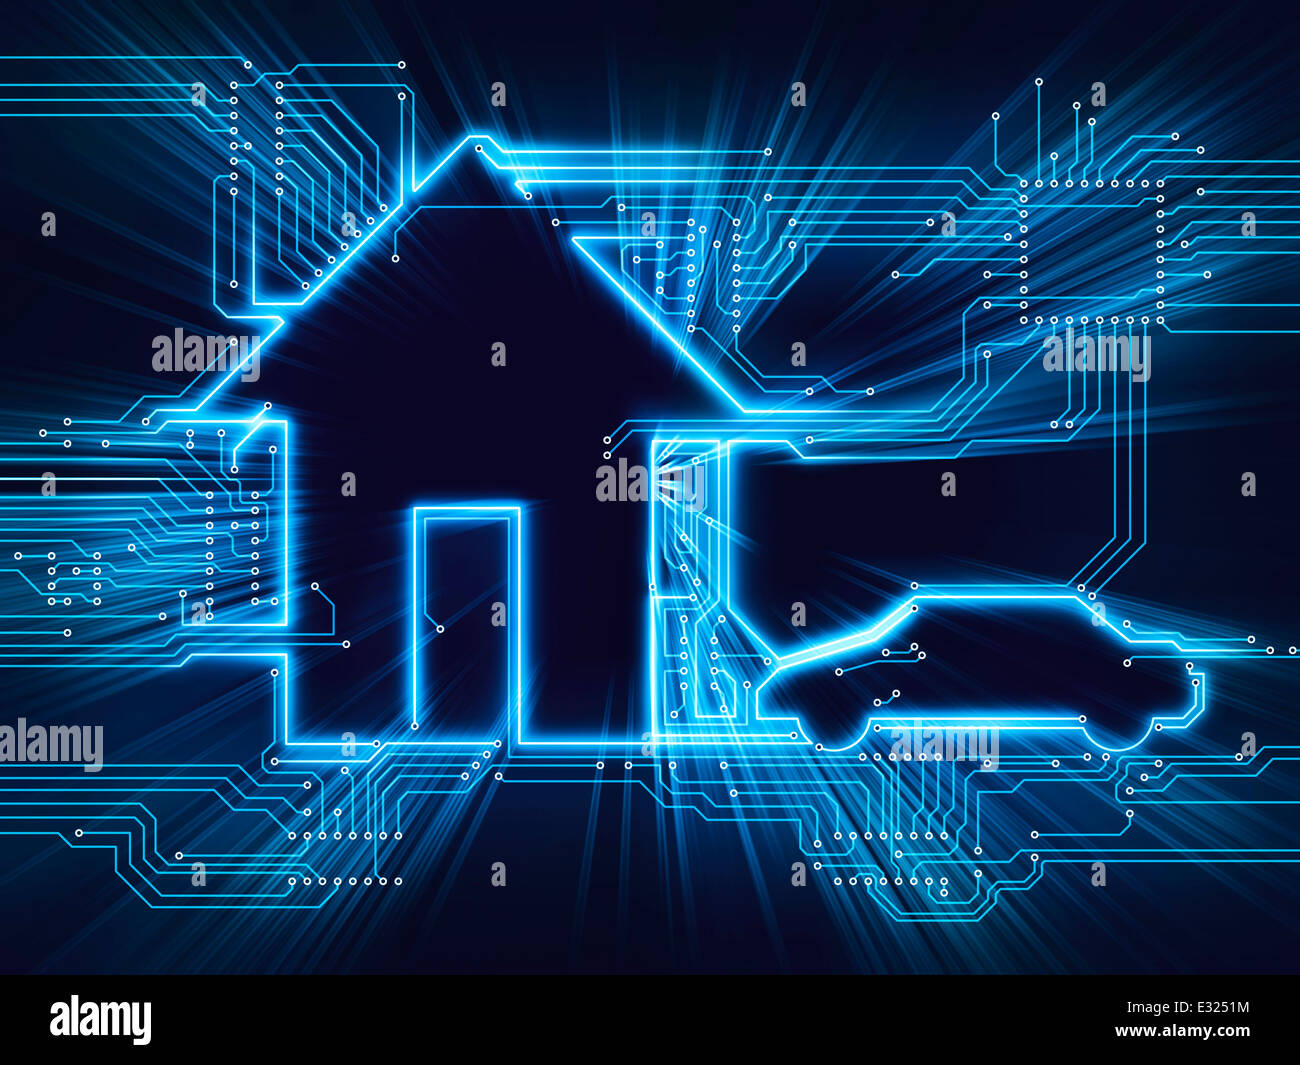 Wiring Diagram For Household Electricity Connected House And Electric Car Future Home Automation